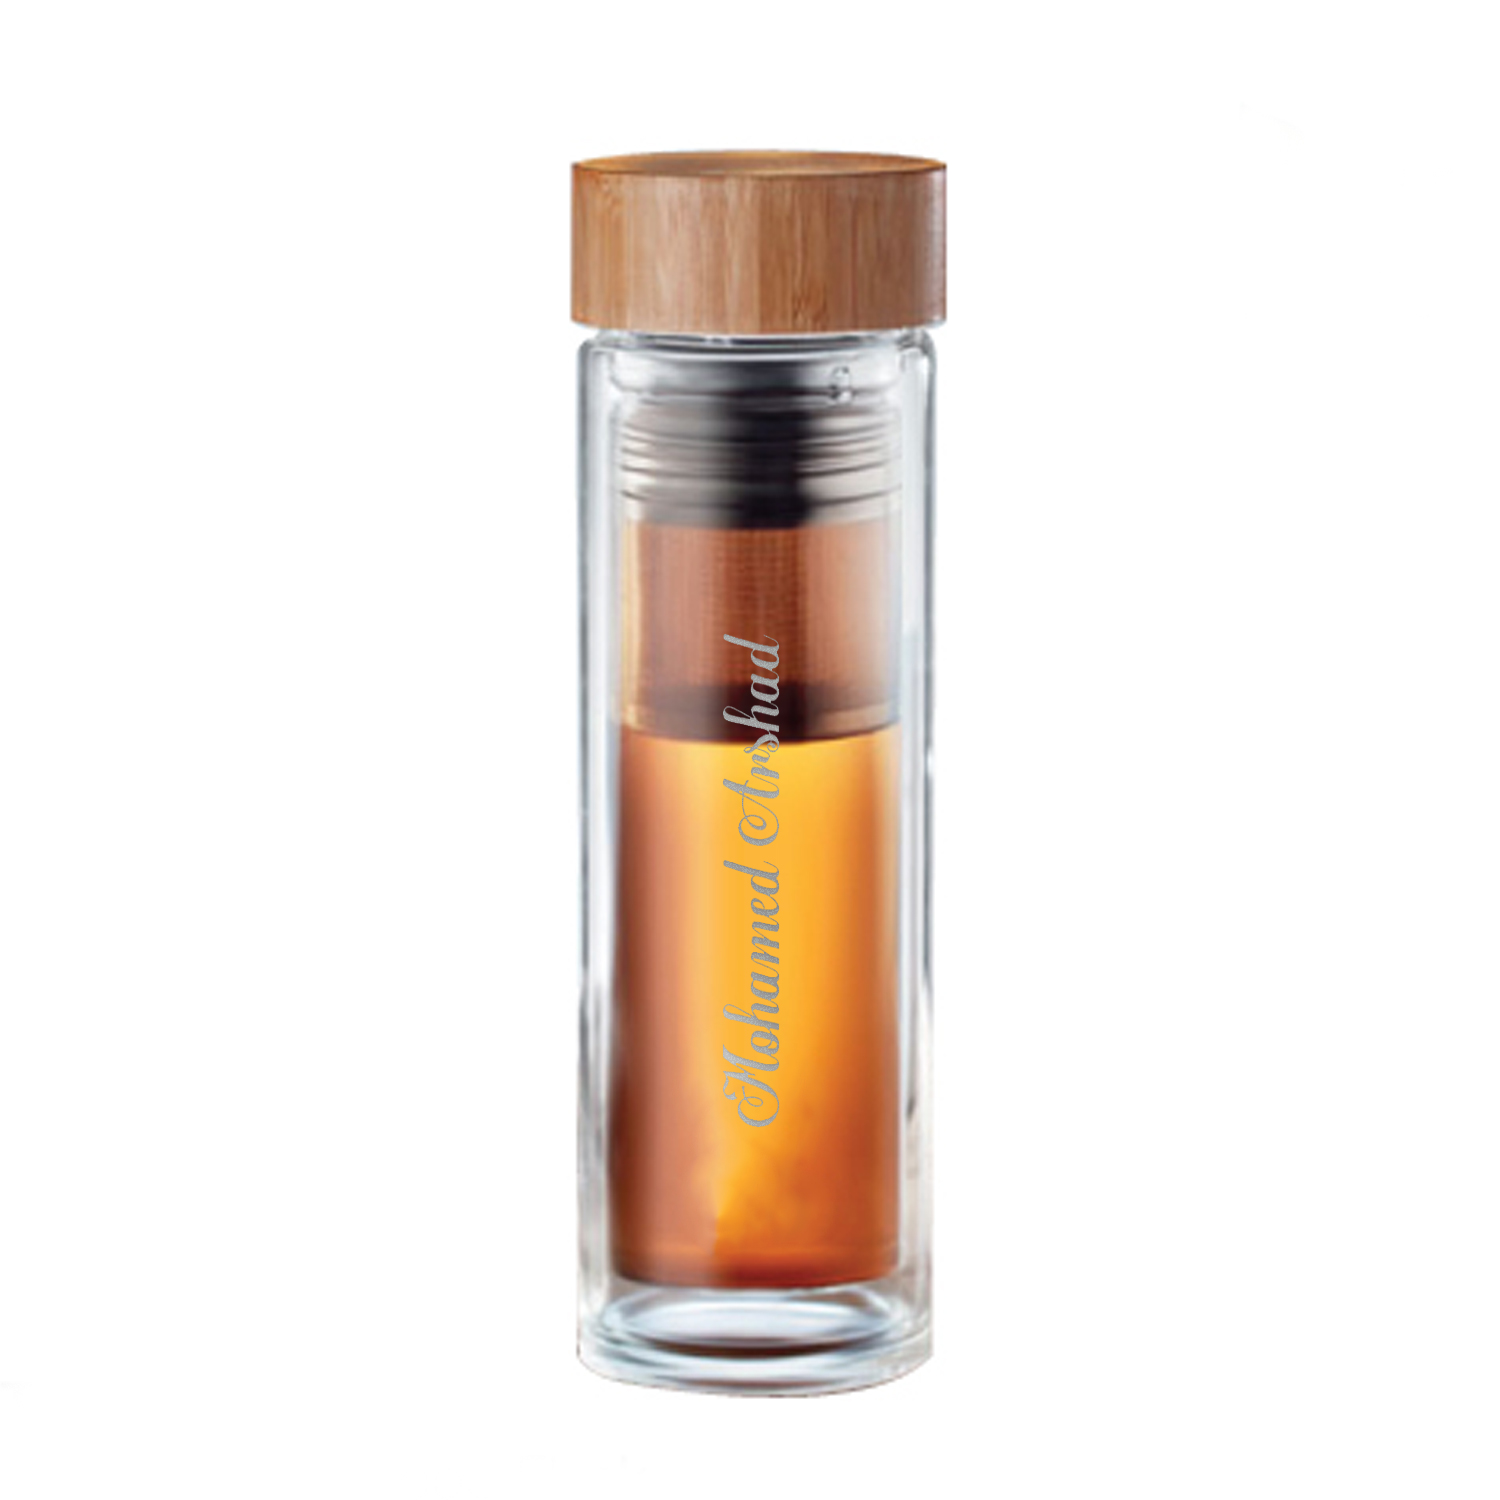 Engraved Text Glass Flask with Bamboo Cap: